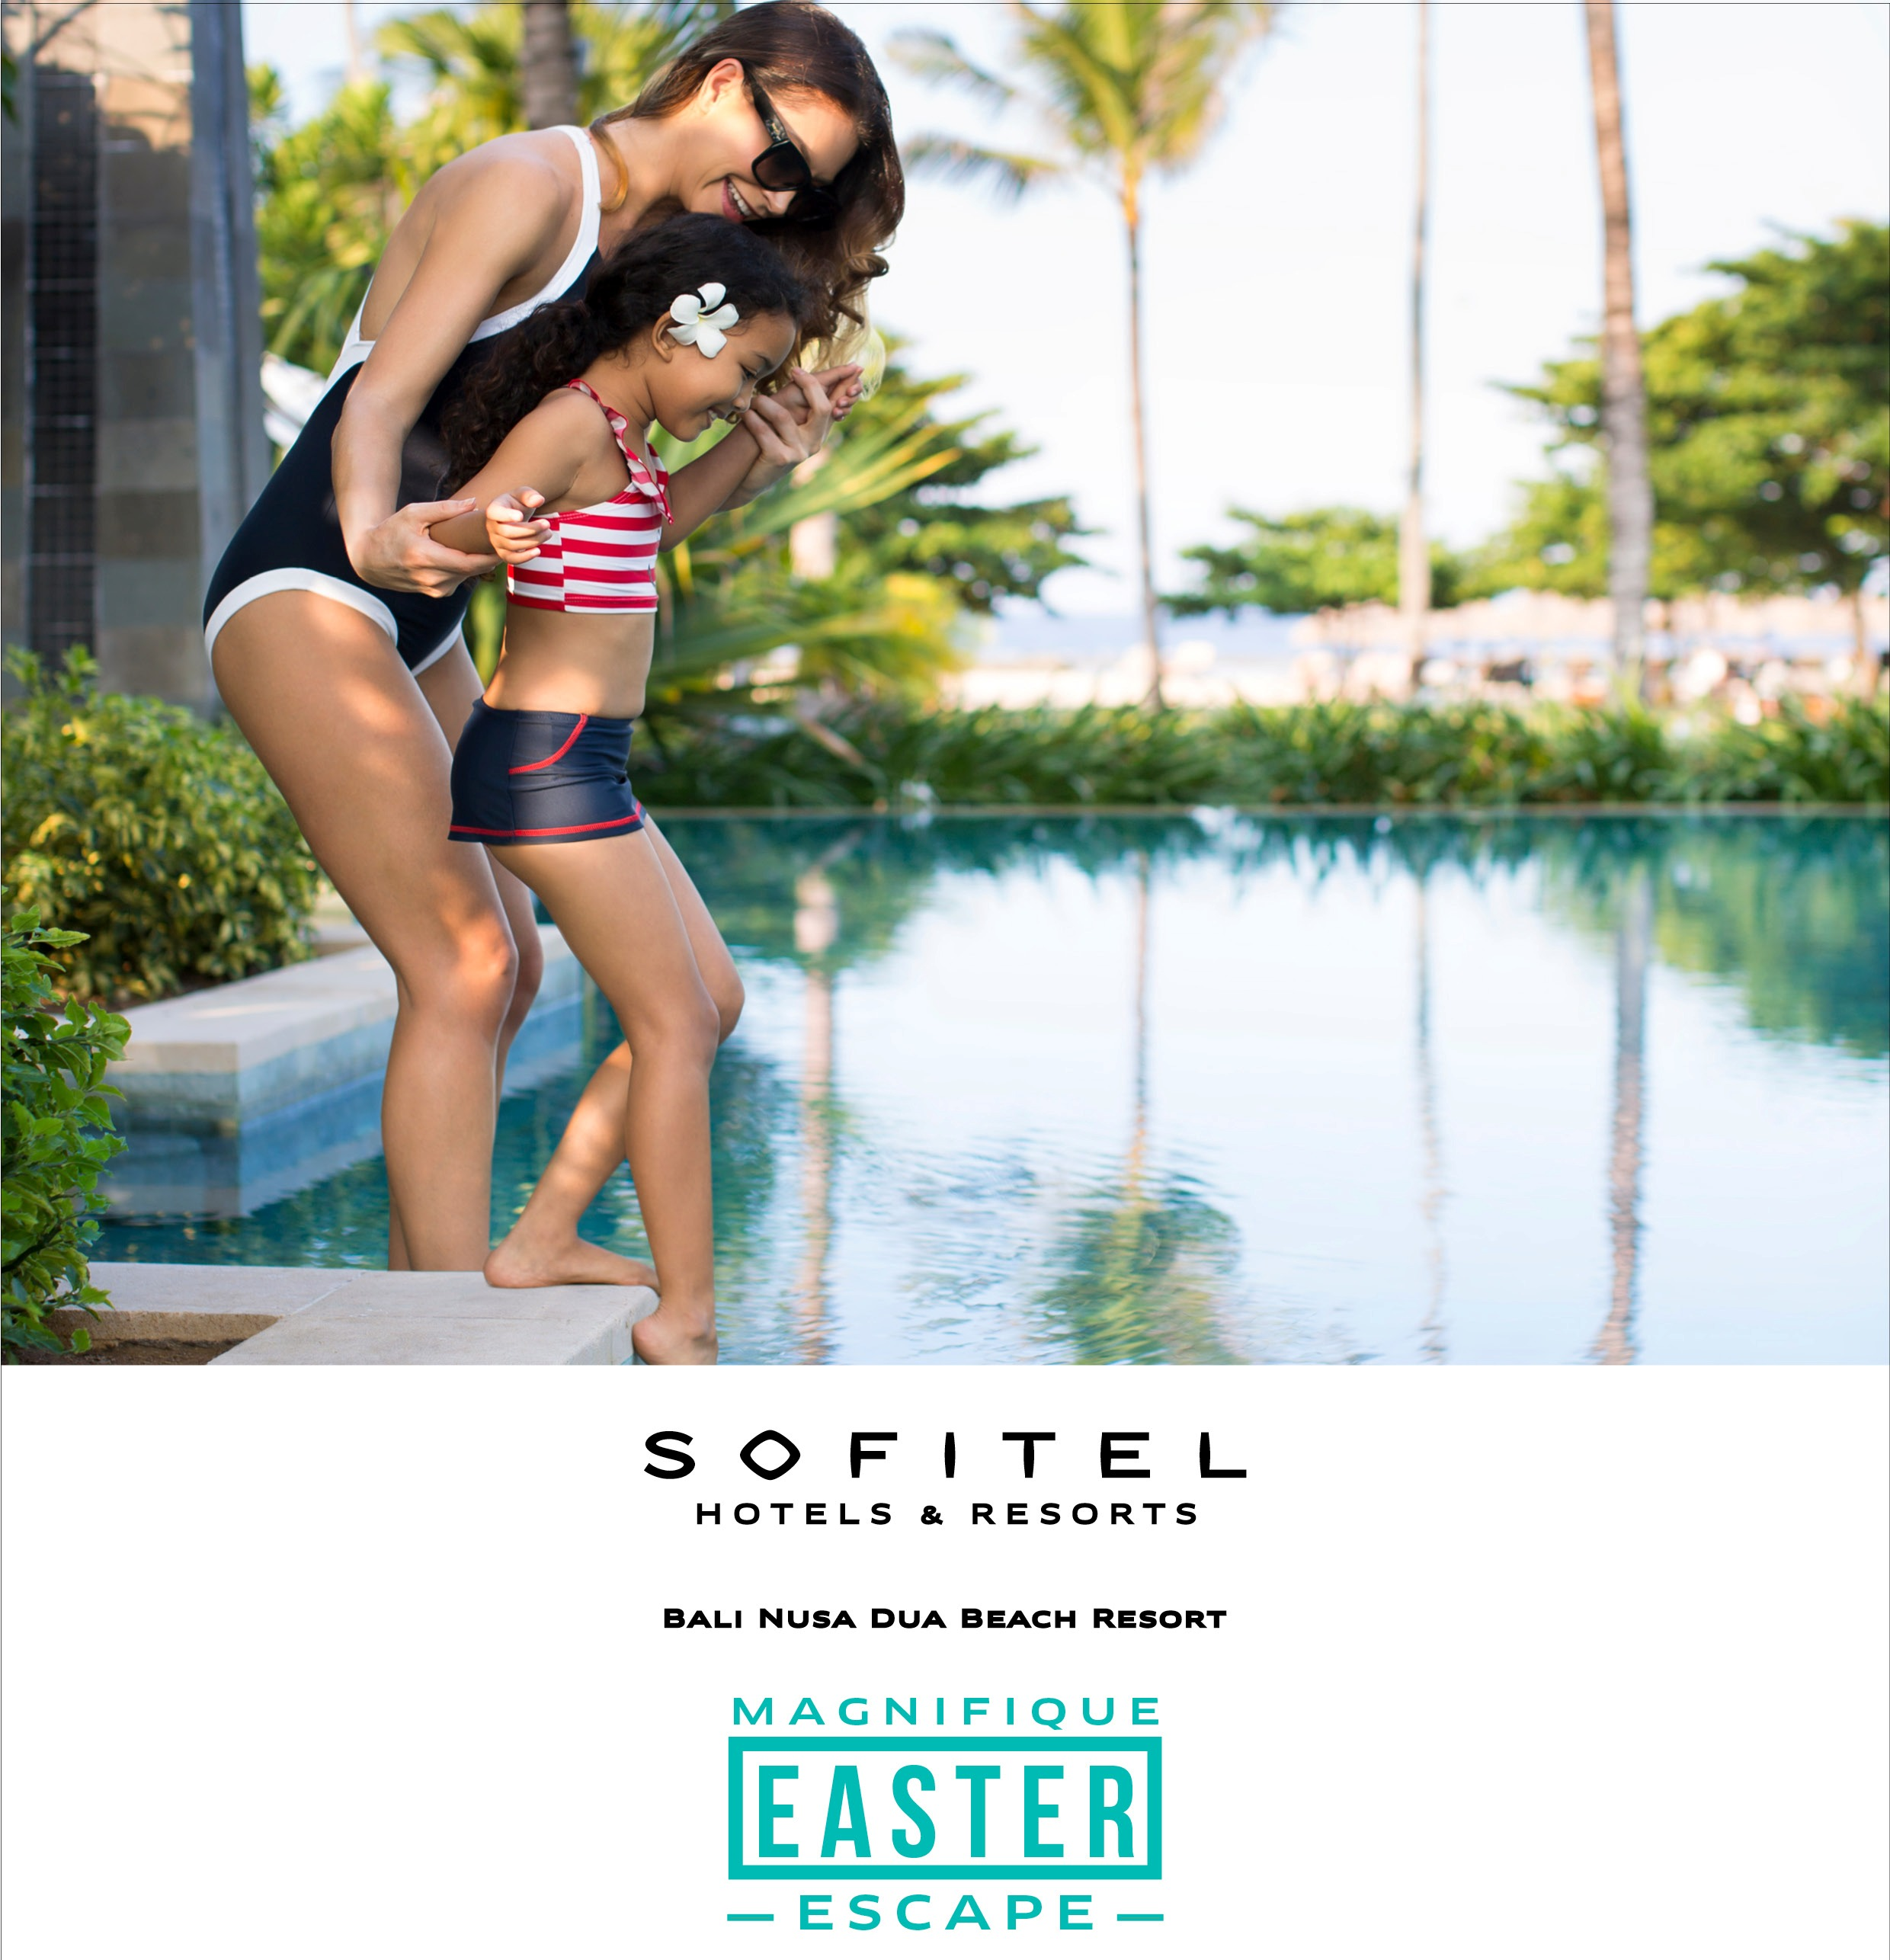 http://highend-traveller.com/easter-room-promotion-at-sofitel-bali-nusa-dua/